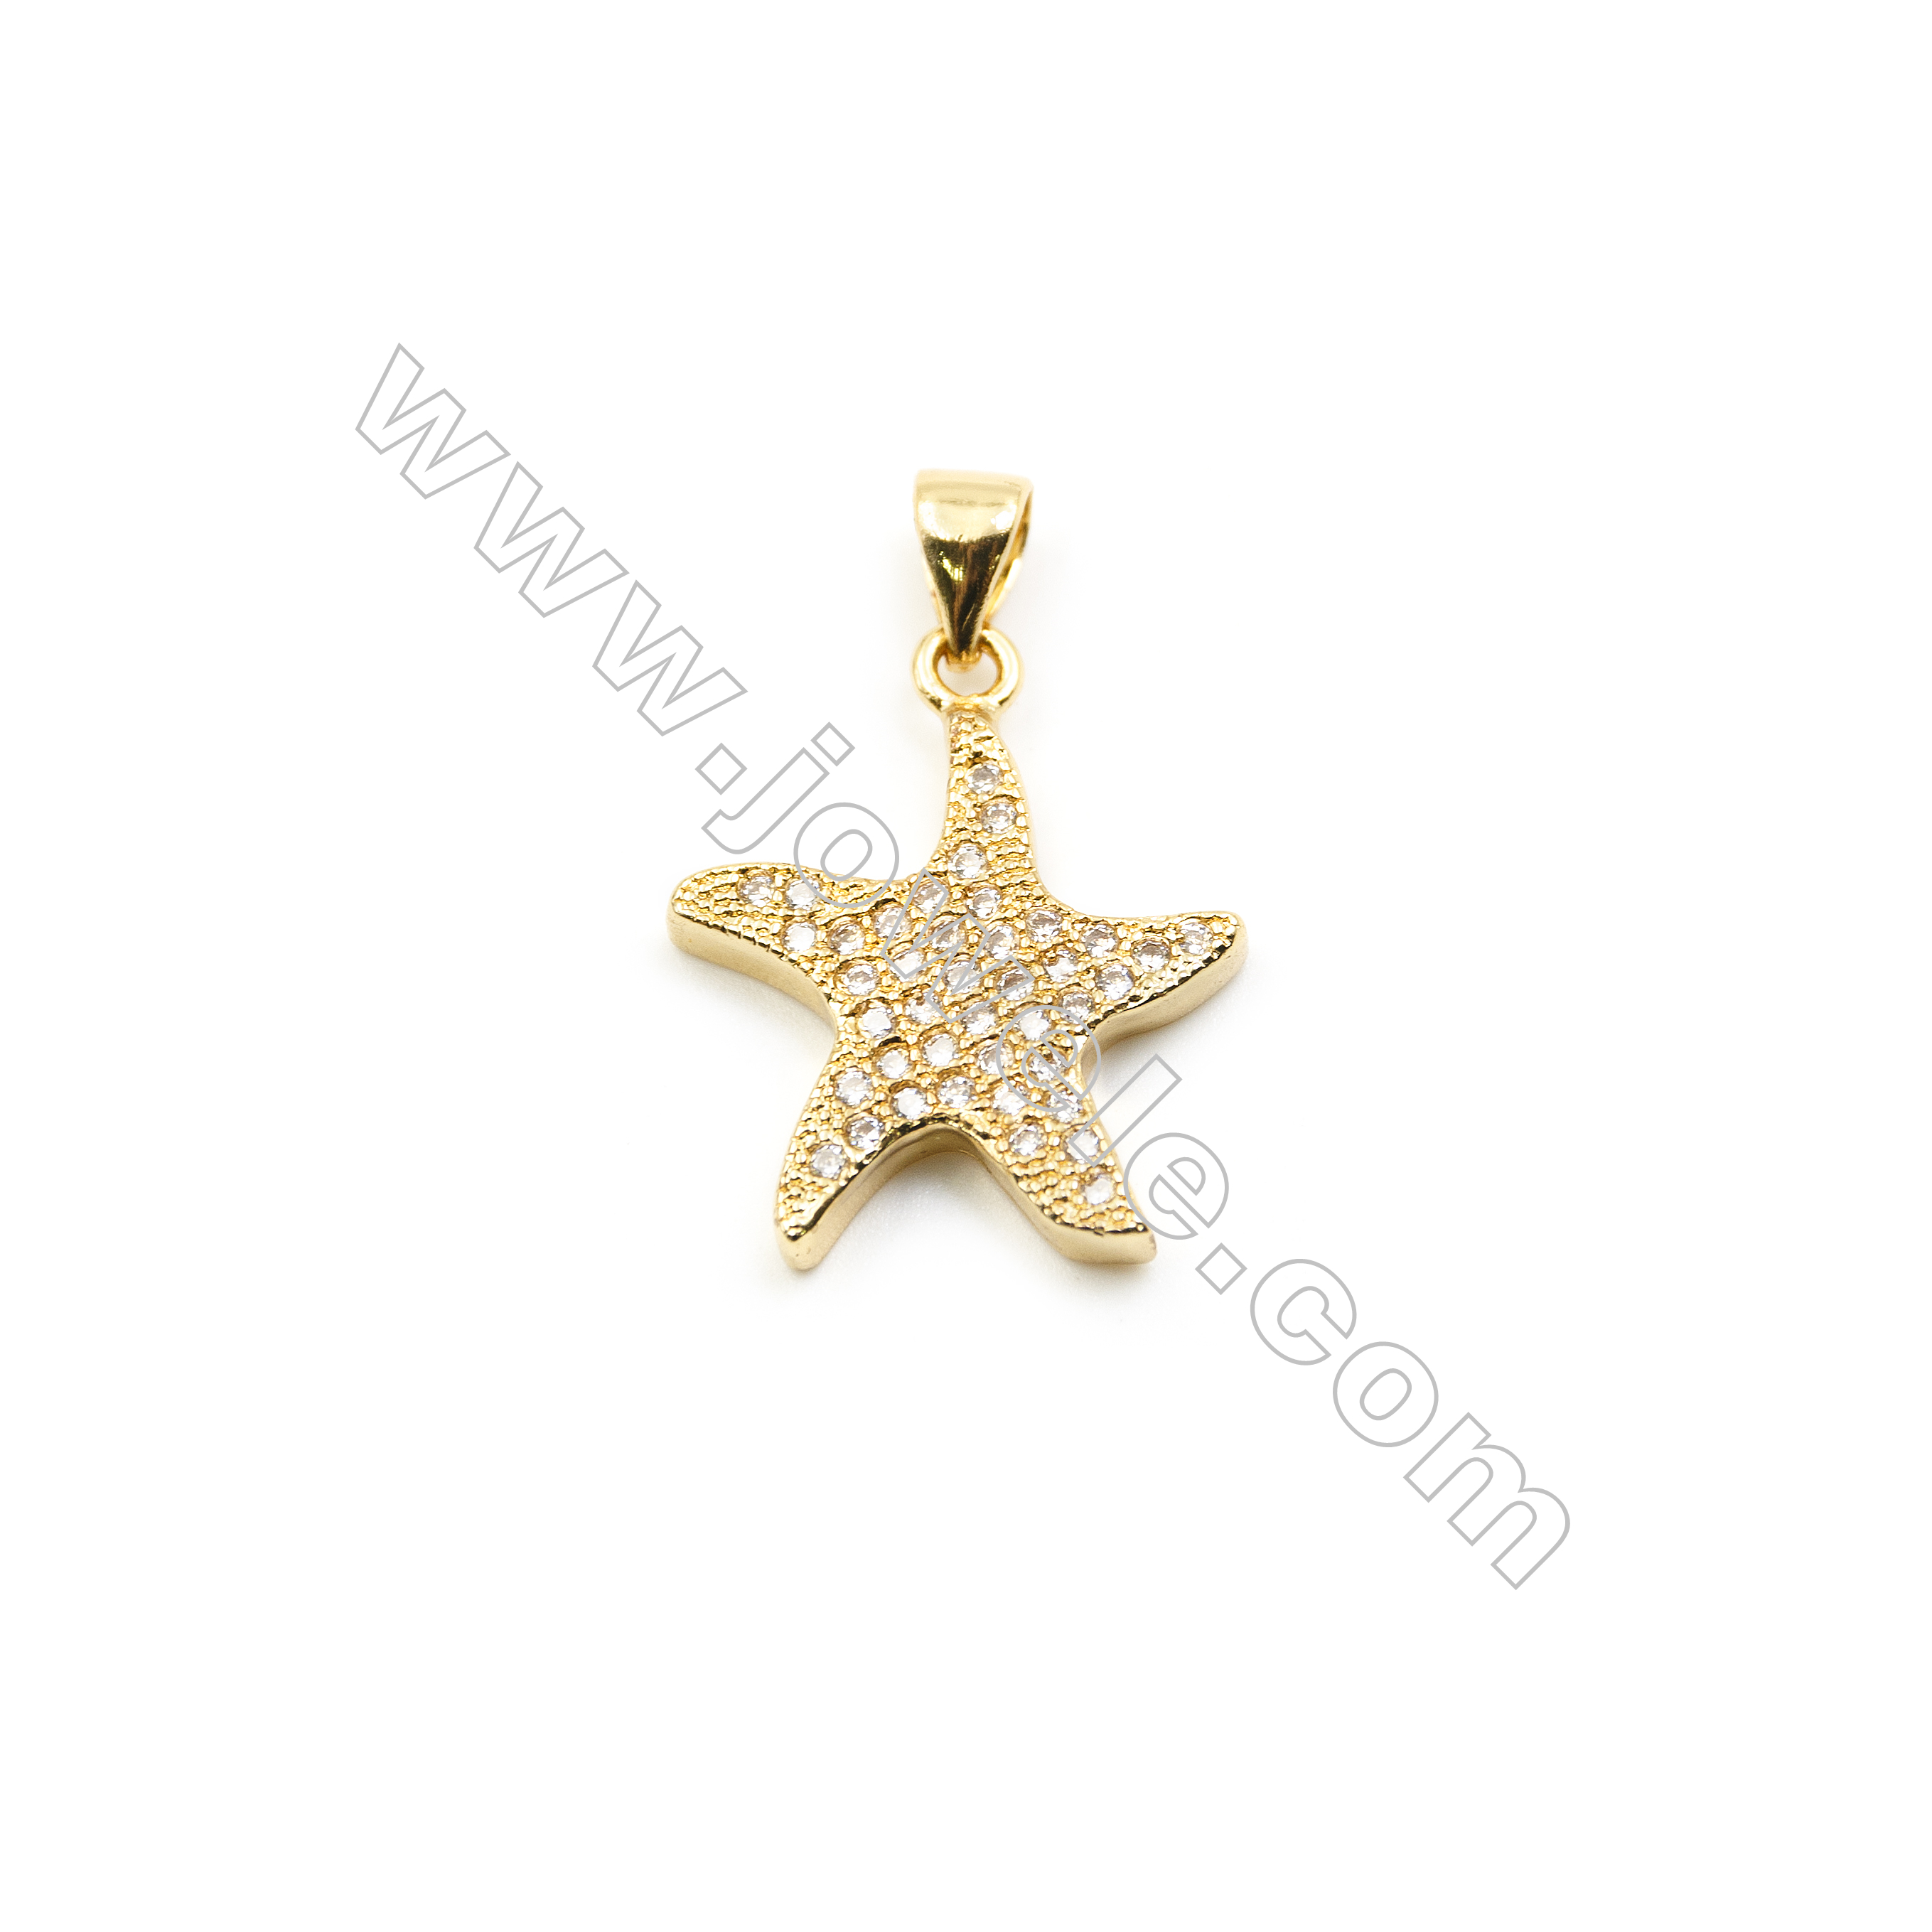 17x18mm Brass Star Pendant  Plated  Cubic Zirconia Micropave  20pcs/pack